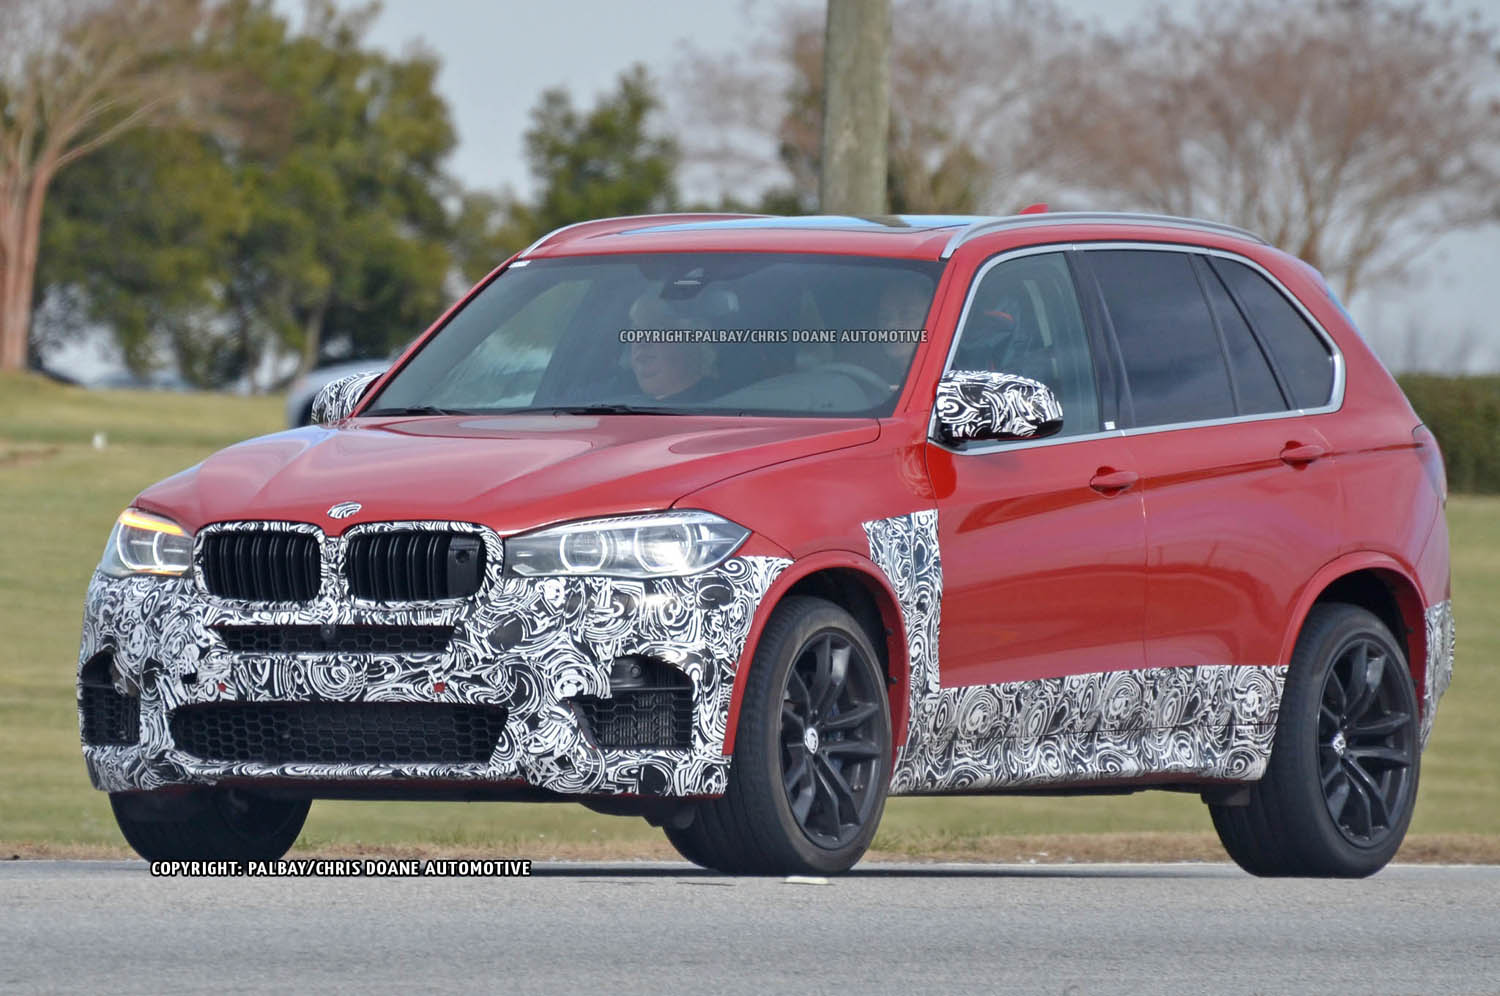 2015 Bmw X5 (f15) - pictures, information and specs - Auto ...